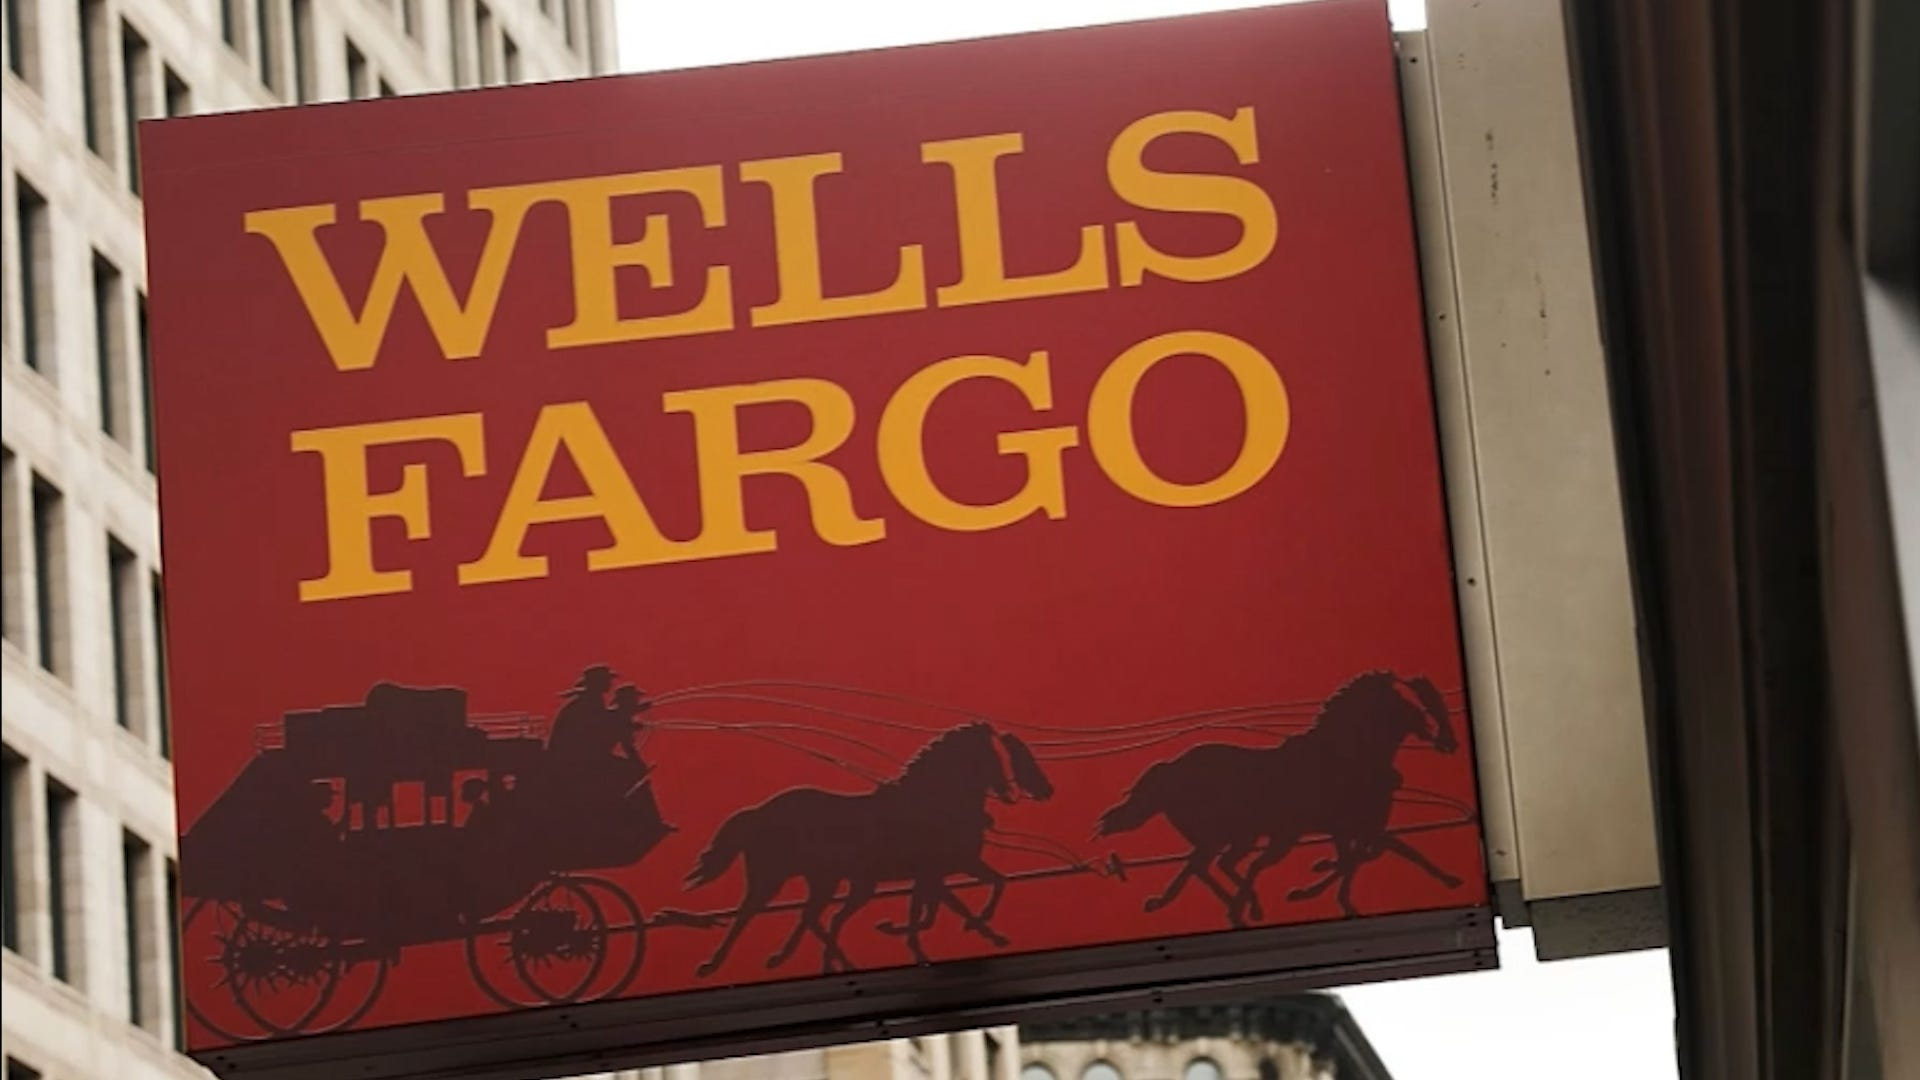 Wells Fargo says outage issues fixed, paychecks processed